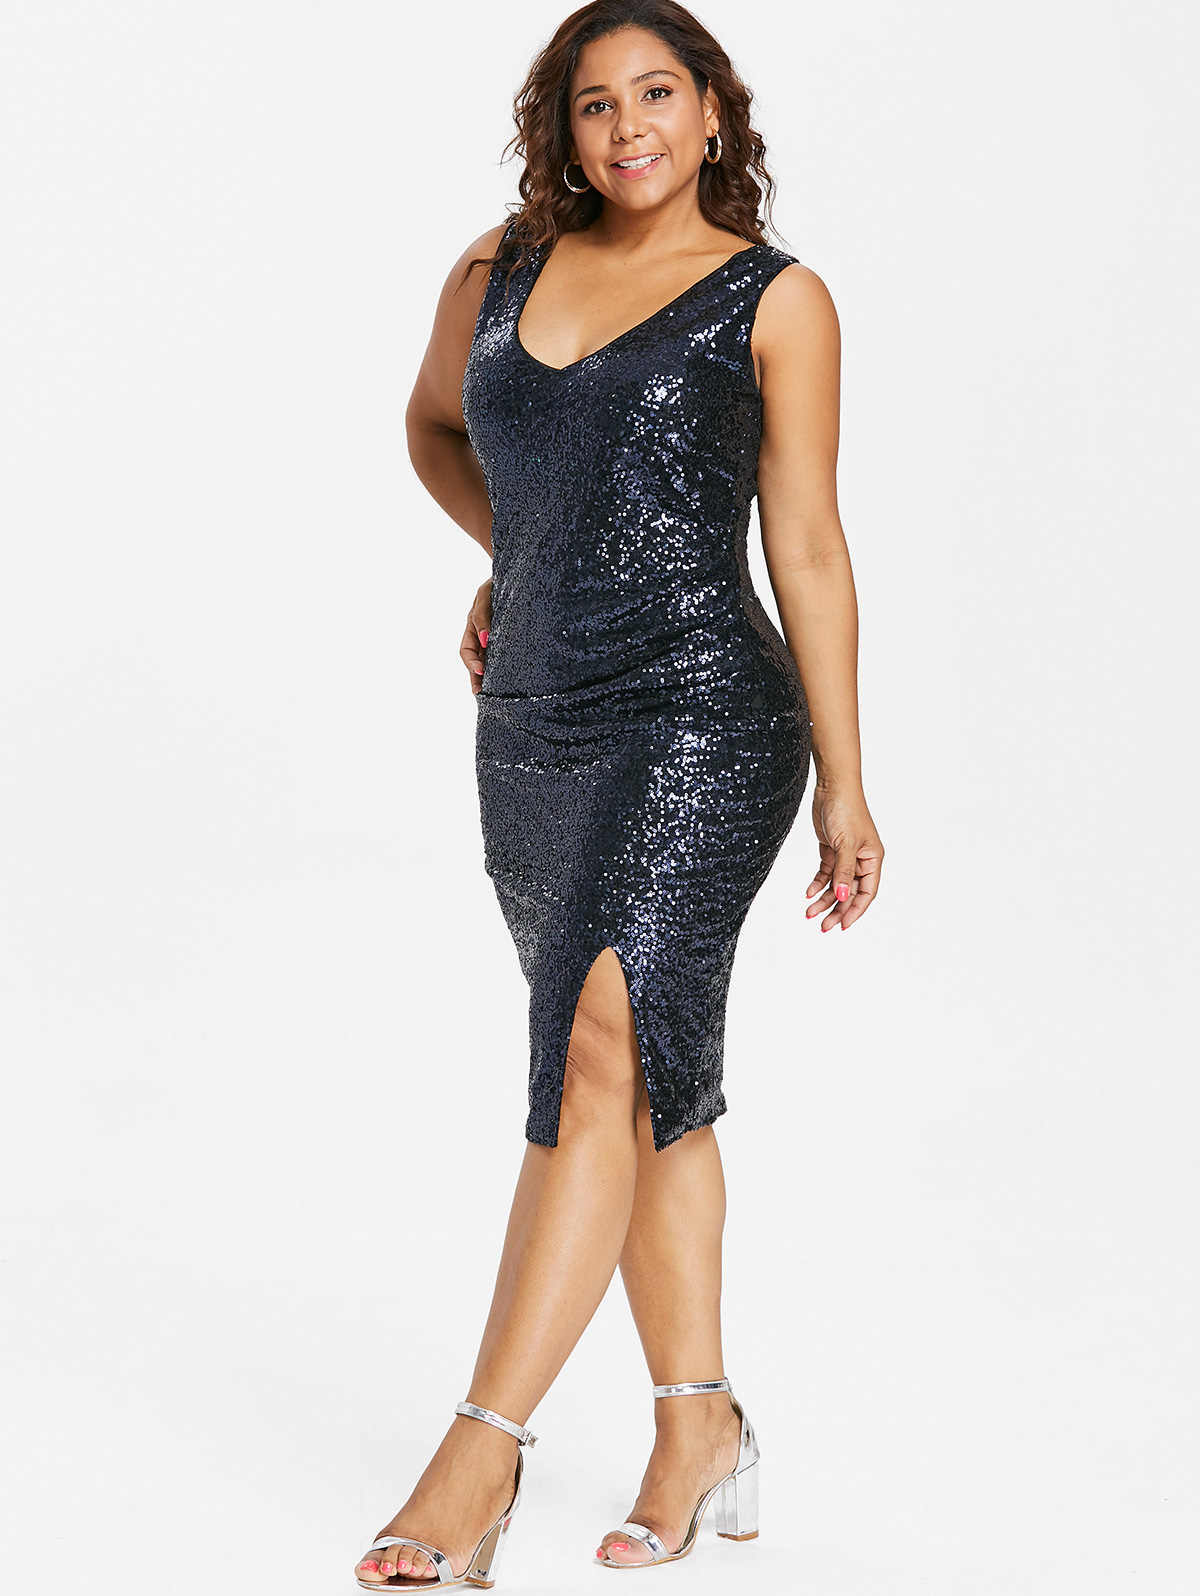 Wipalo Plus Size Sexy V Neck Female Sequined Sheath Dress Women Sleeveless  Side Slit Sparkly Party 37122471b35d